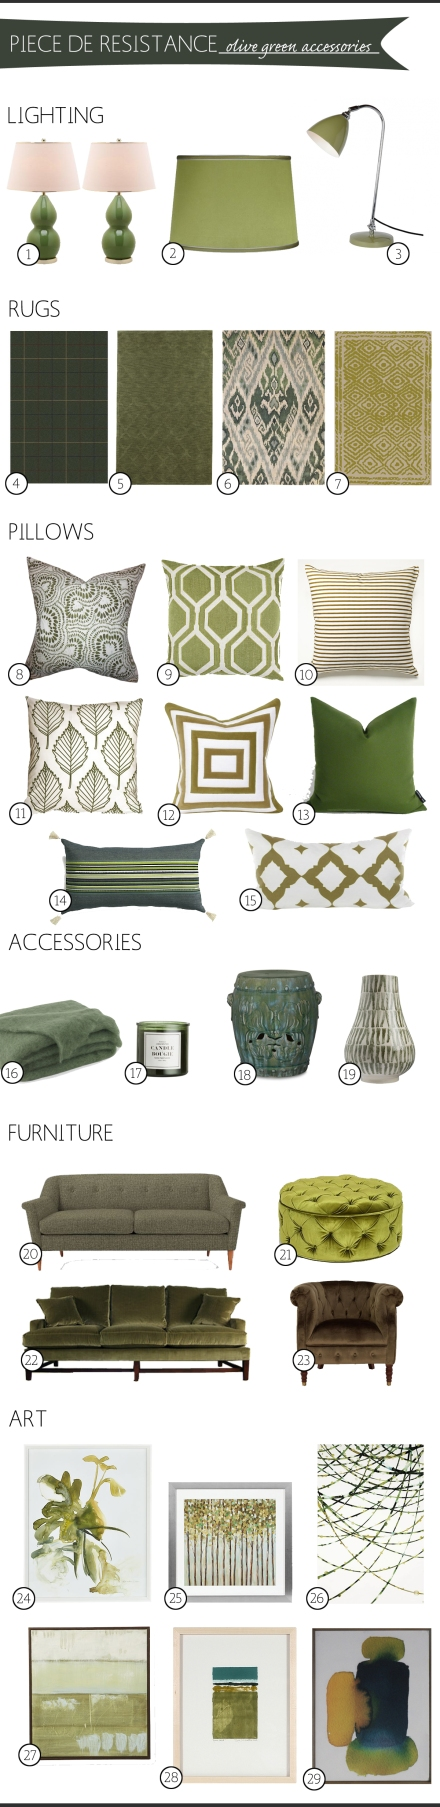 olivegreenaccessoriesanddecor copy